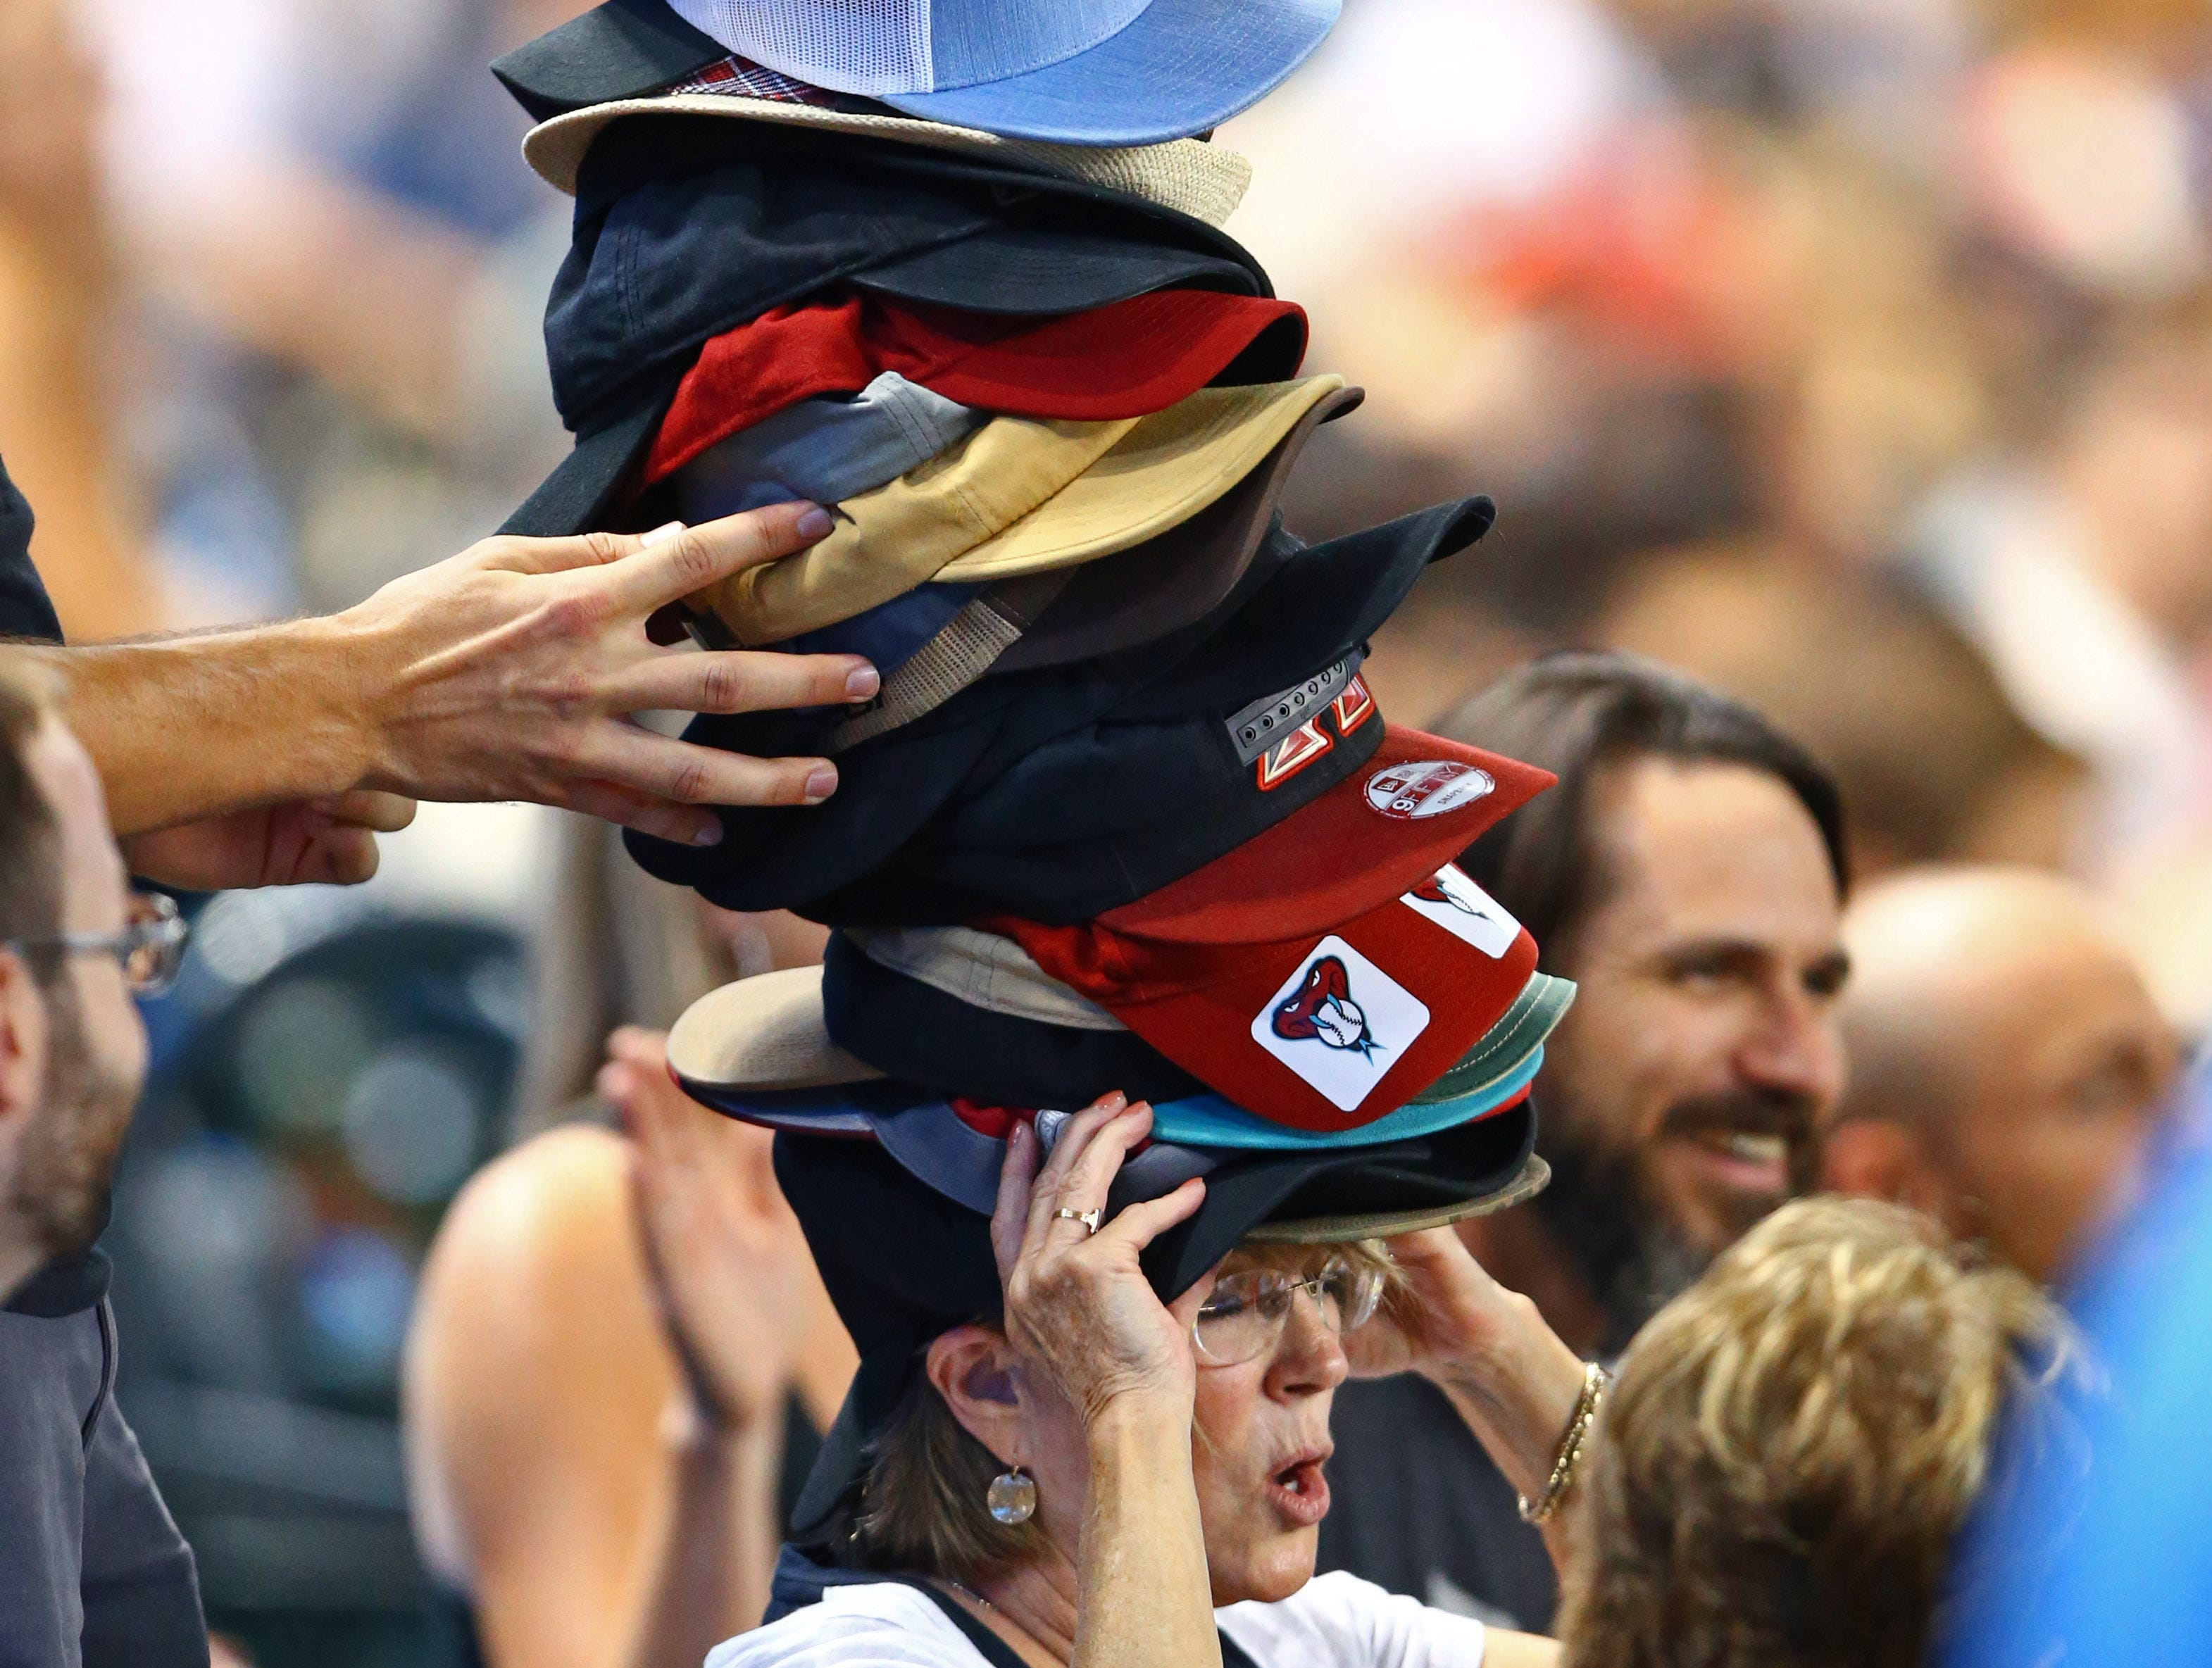 Aug. 6: An Arizona Diamondbacks fan in the crowd wore all the hats during extra innings against the Philadelphia Phillies at Chase Field.